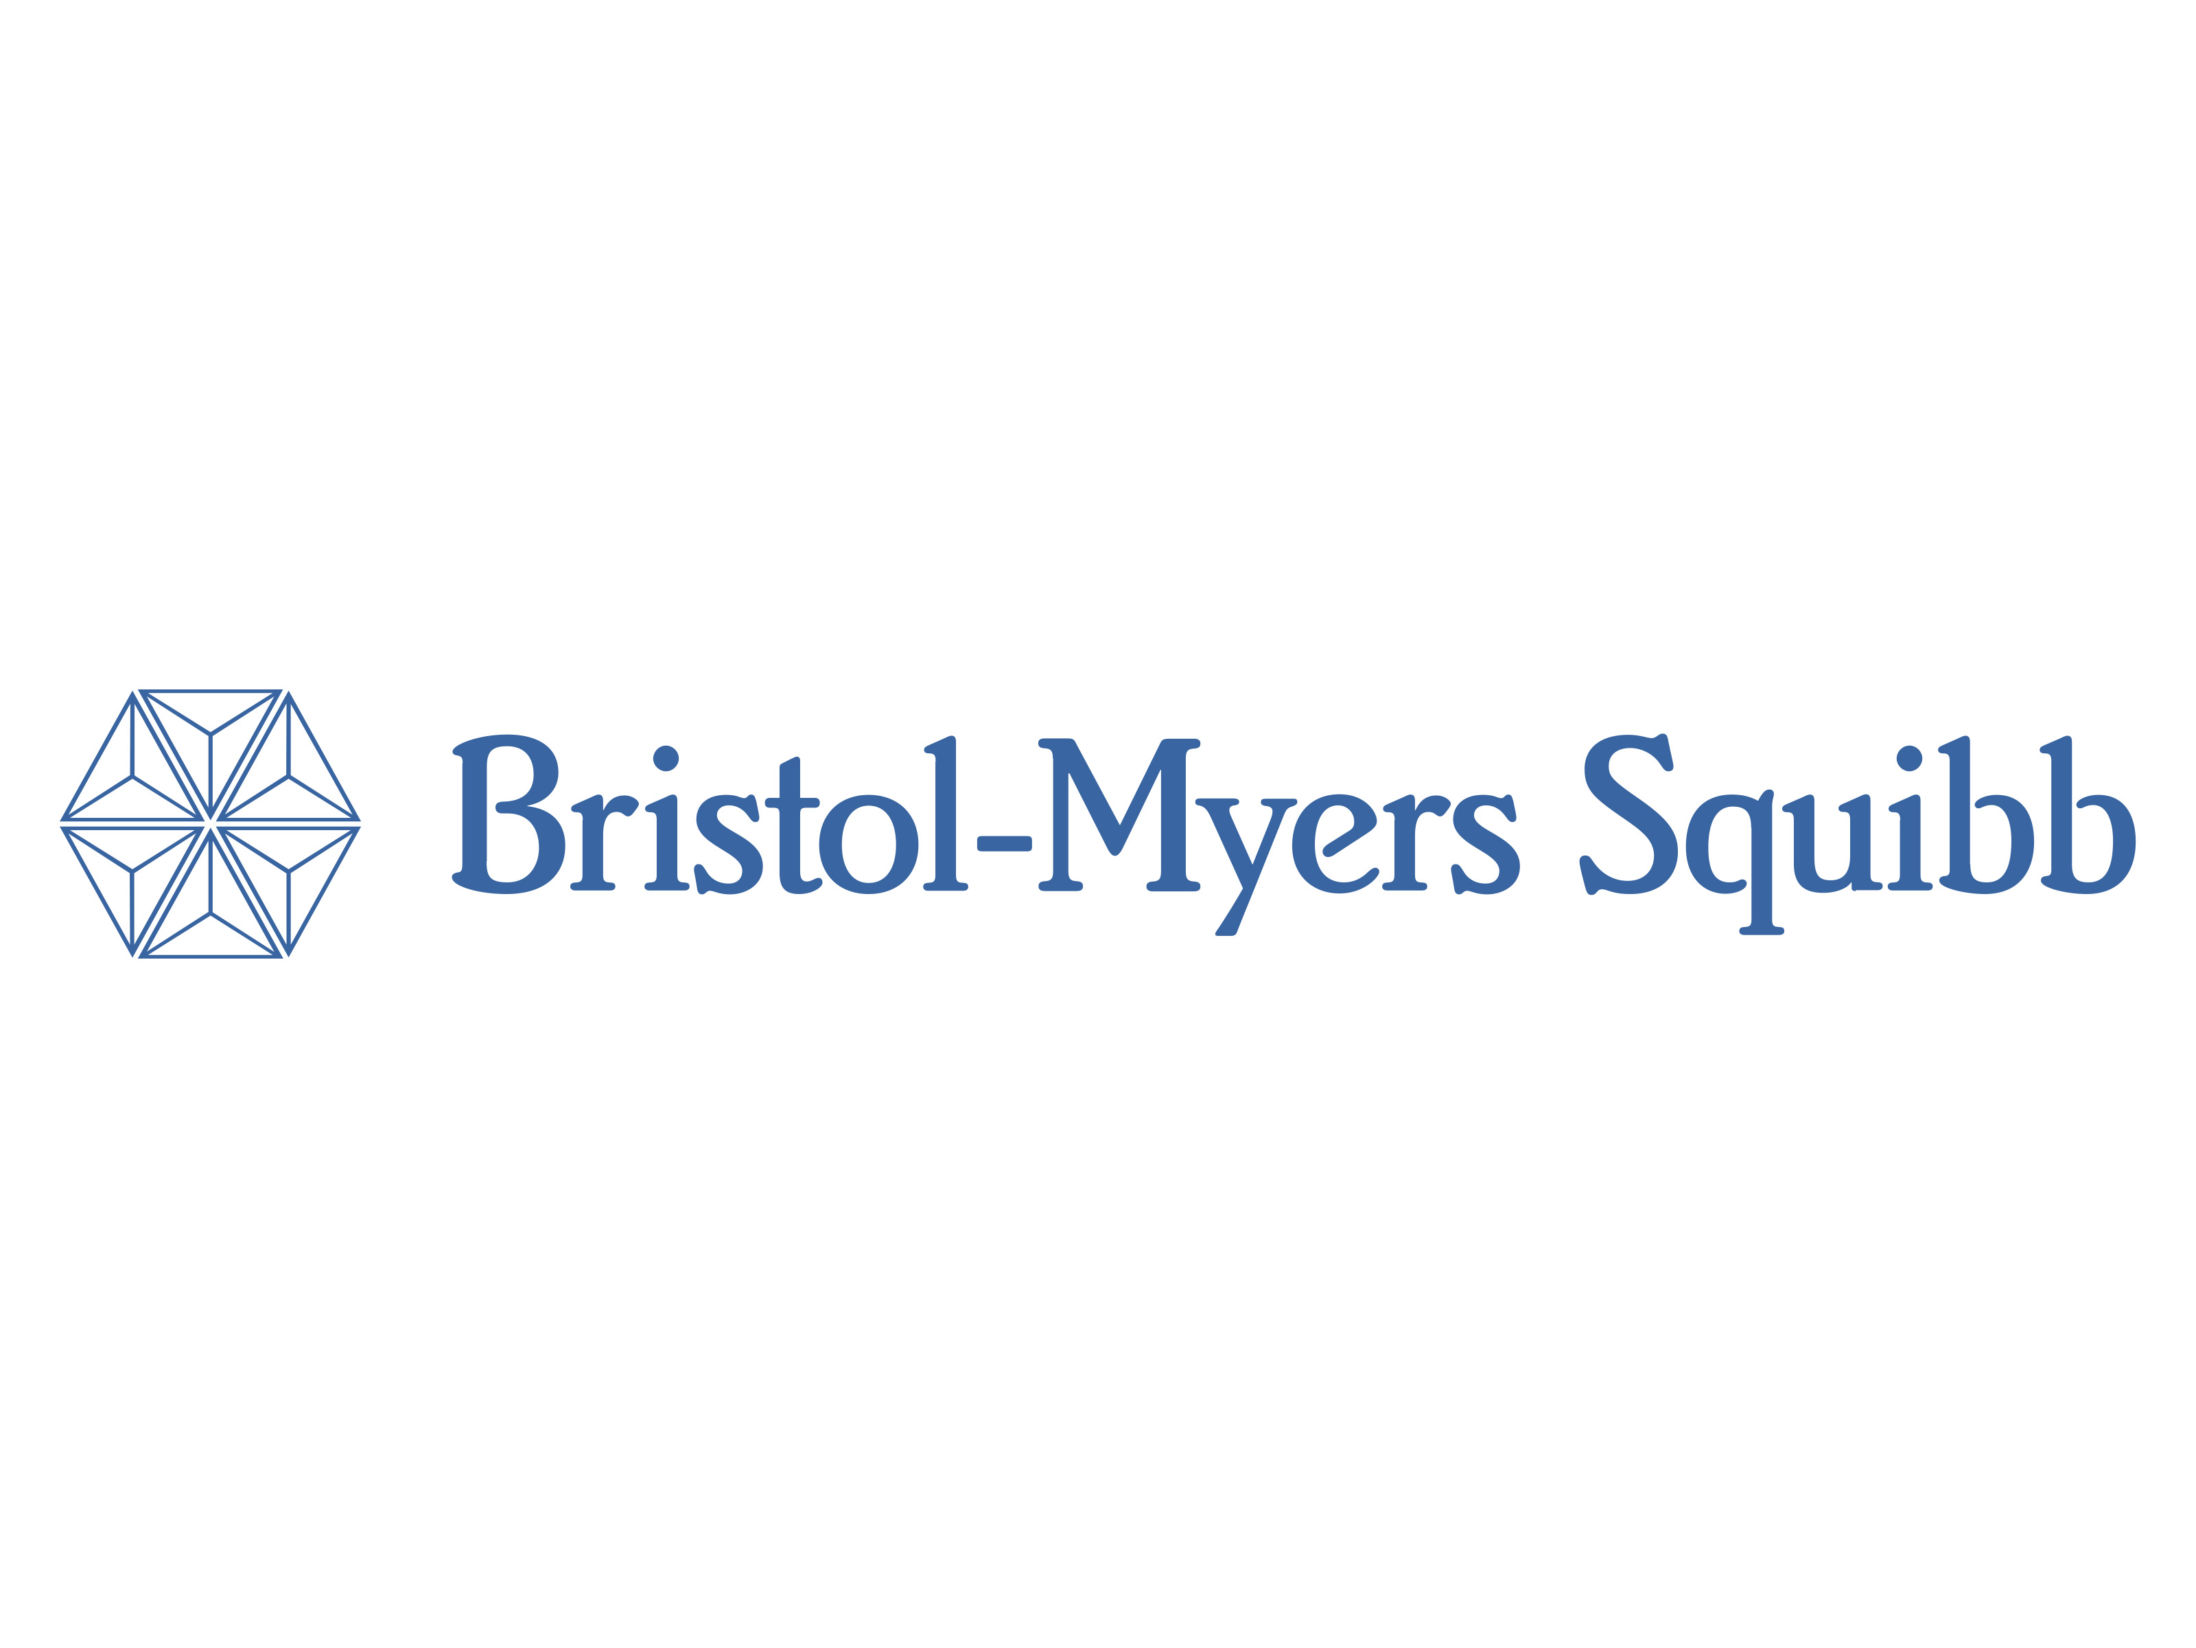 Bristol-Myers Squibb Team Building Review